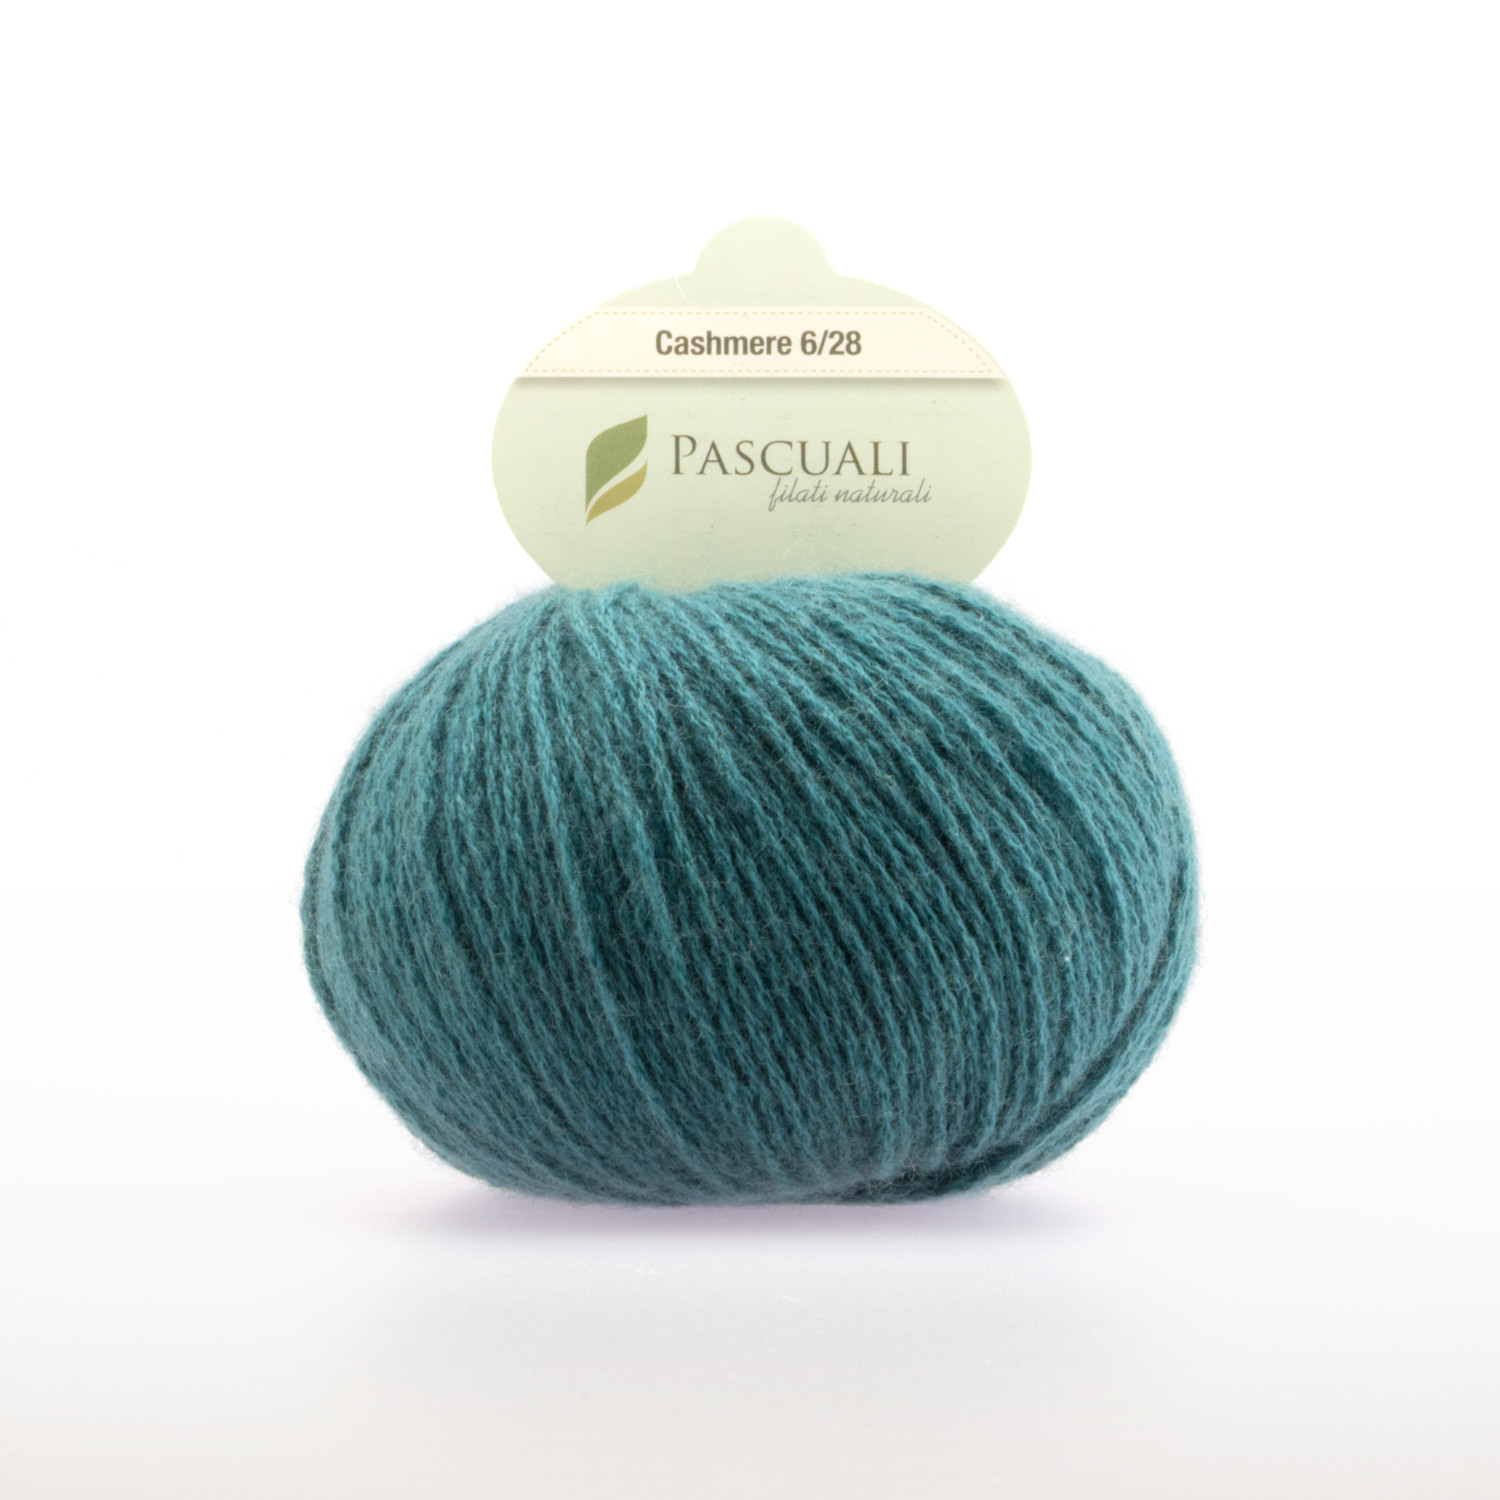 Cashmere Yarn for Sale Luxury Cashmere 6 28 Of Perfect 47 Models Cashmere Yarn for Sale